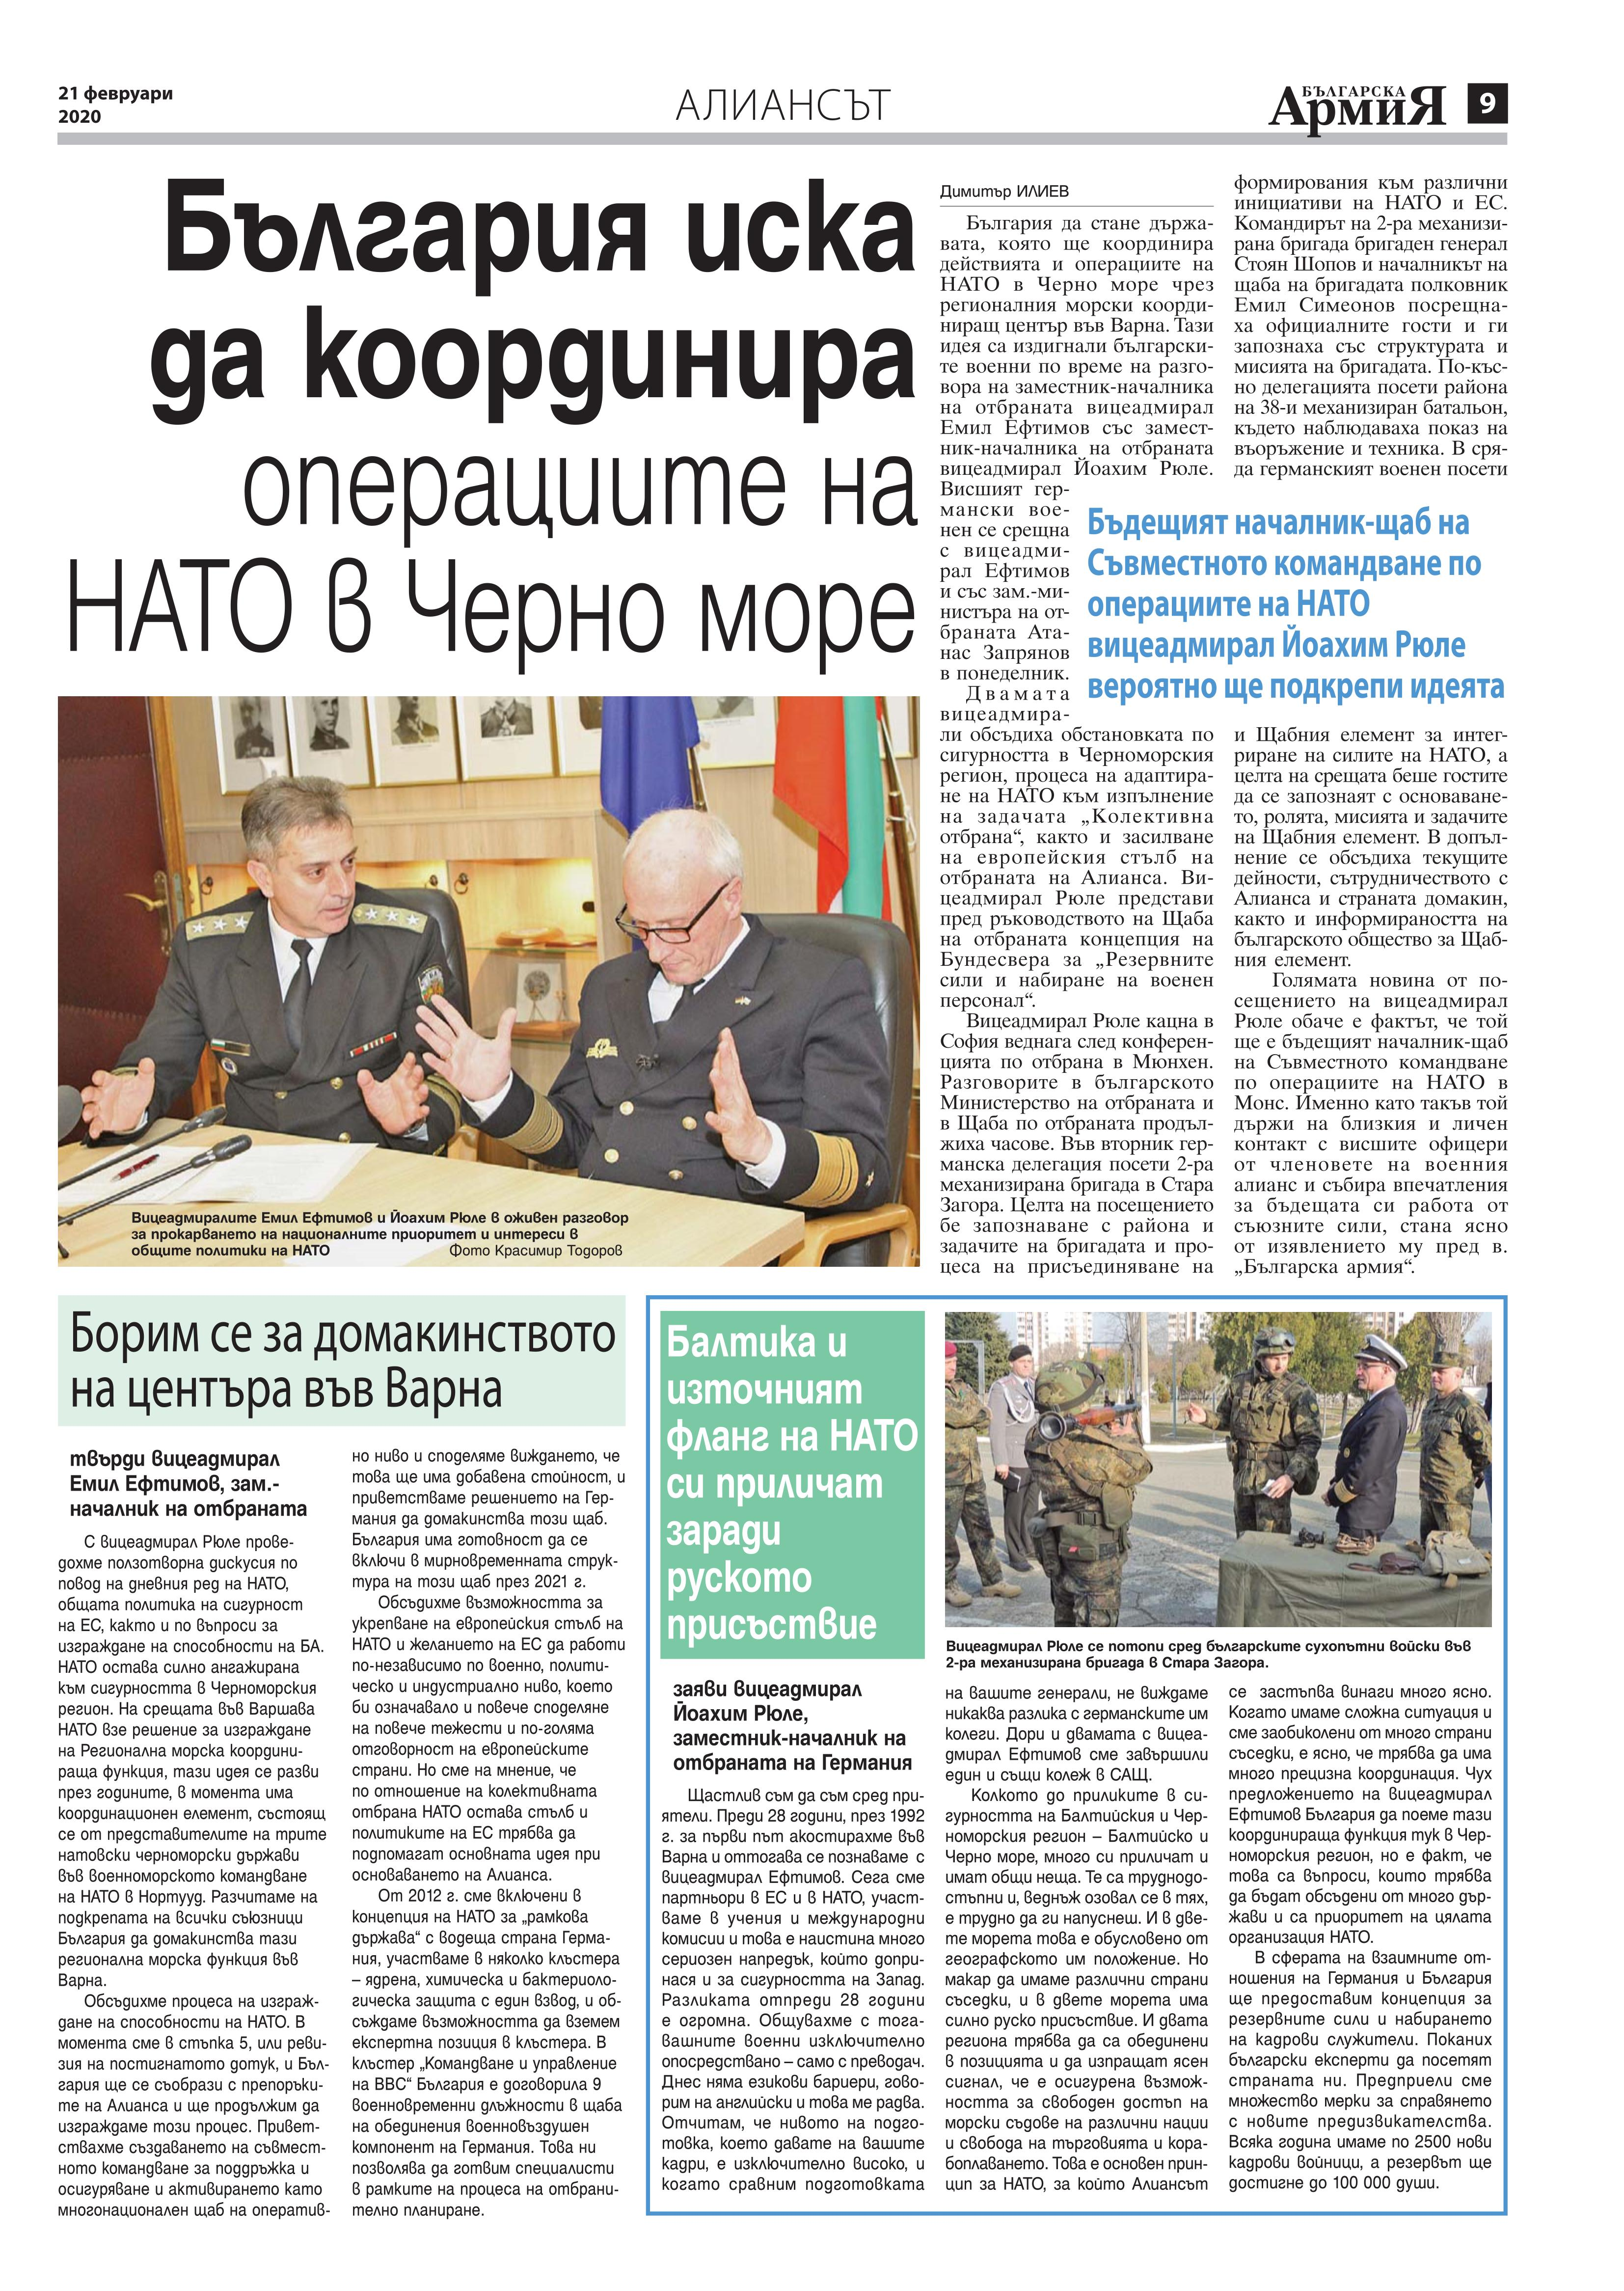 https://www.armymedia.bg/wp-content/uploads/2015/06/09.page1_-125.jpg